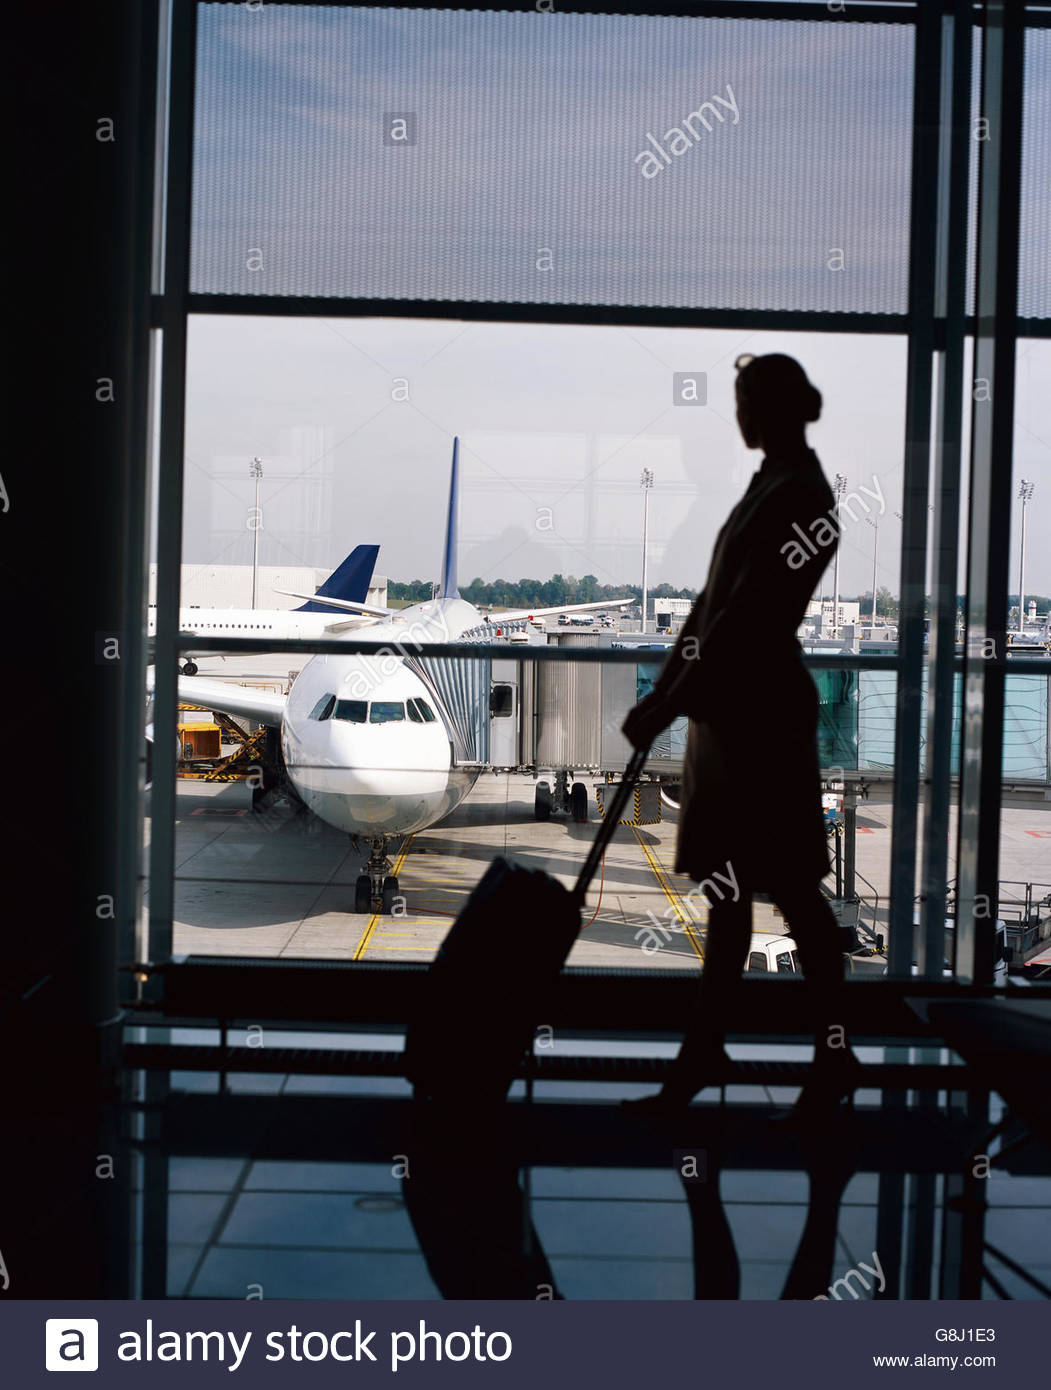 Female traveller in airport - Stock Image